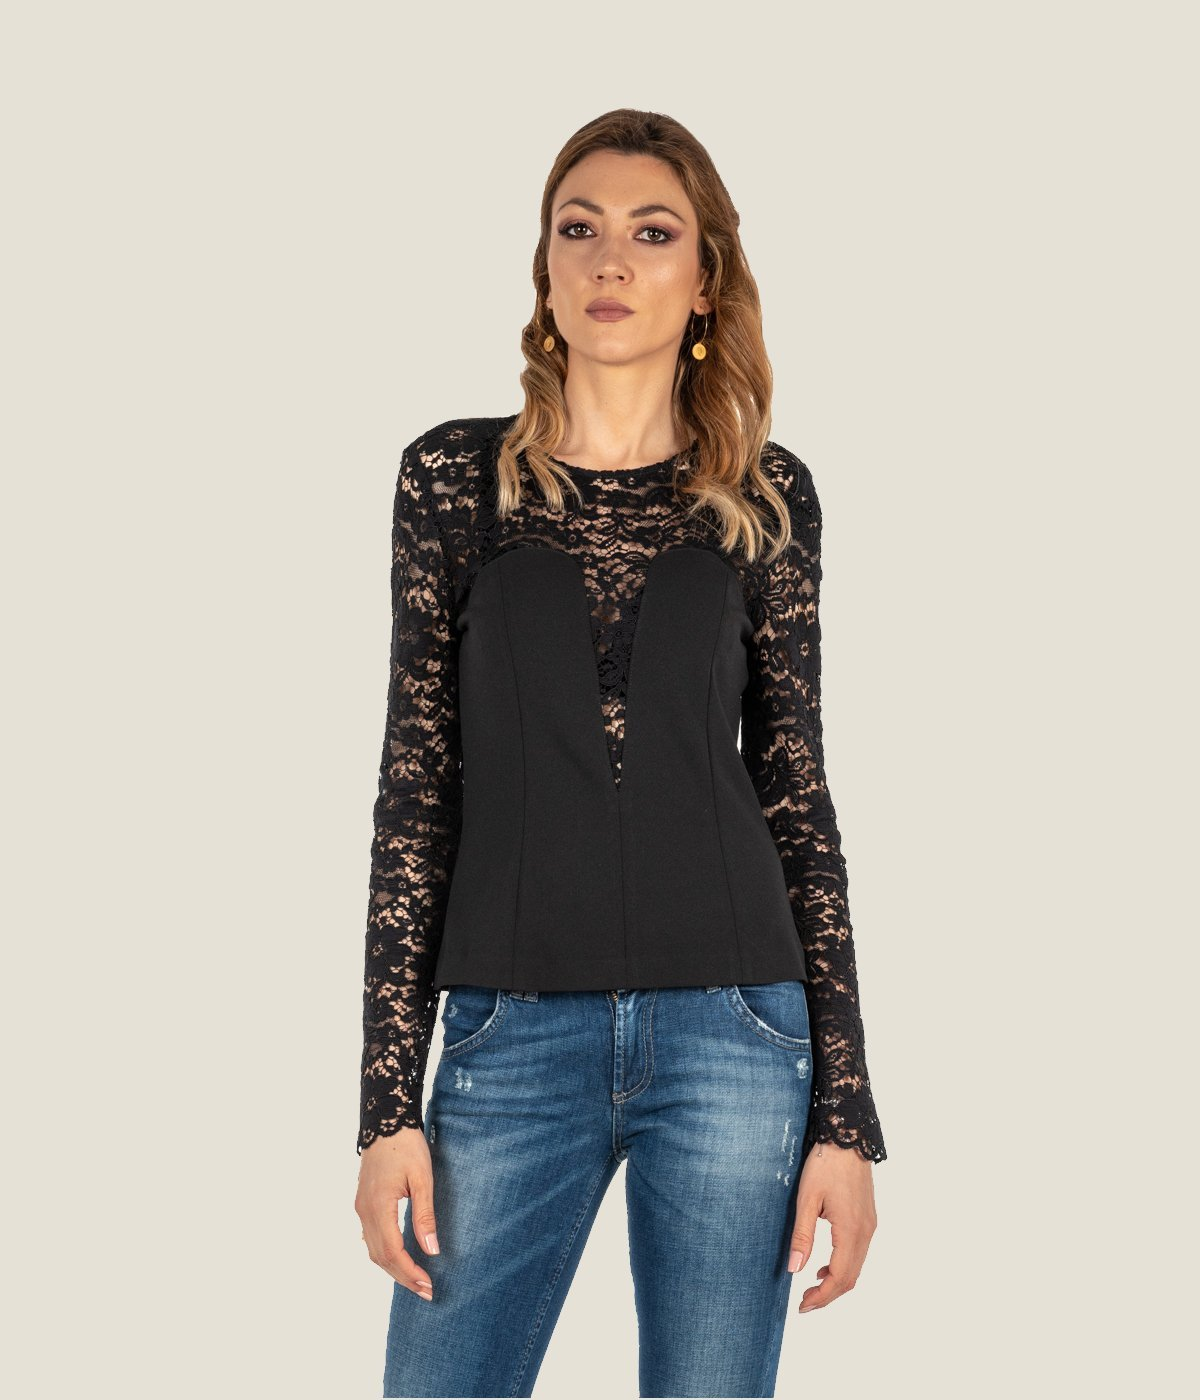 low priced 1bfce c119b CAMICIA DONNA MERCI NERA BLUSA PIZZO MADE IN ITALY